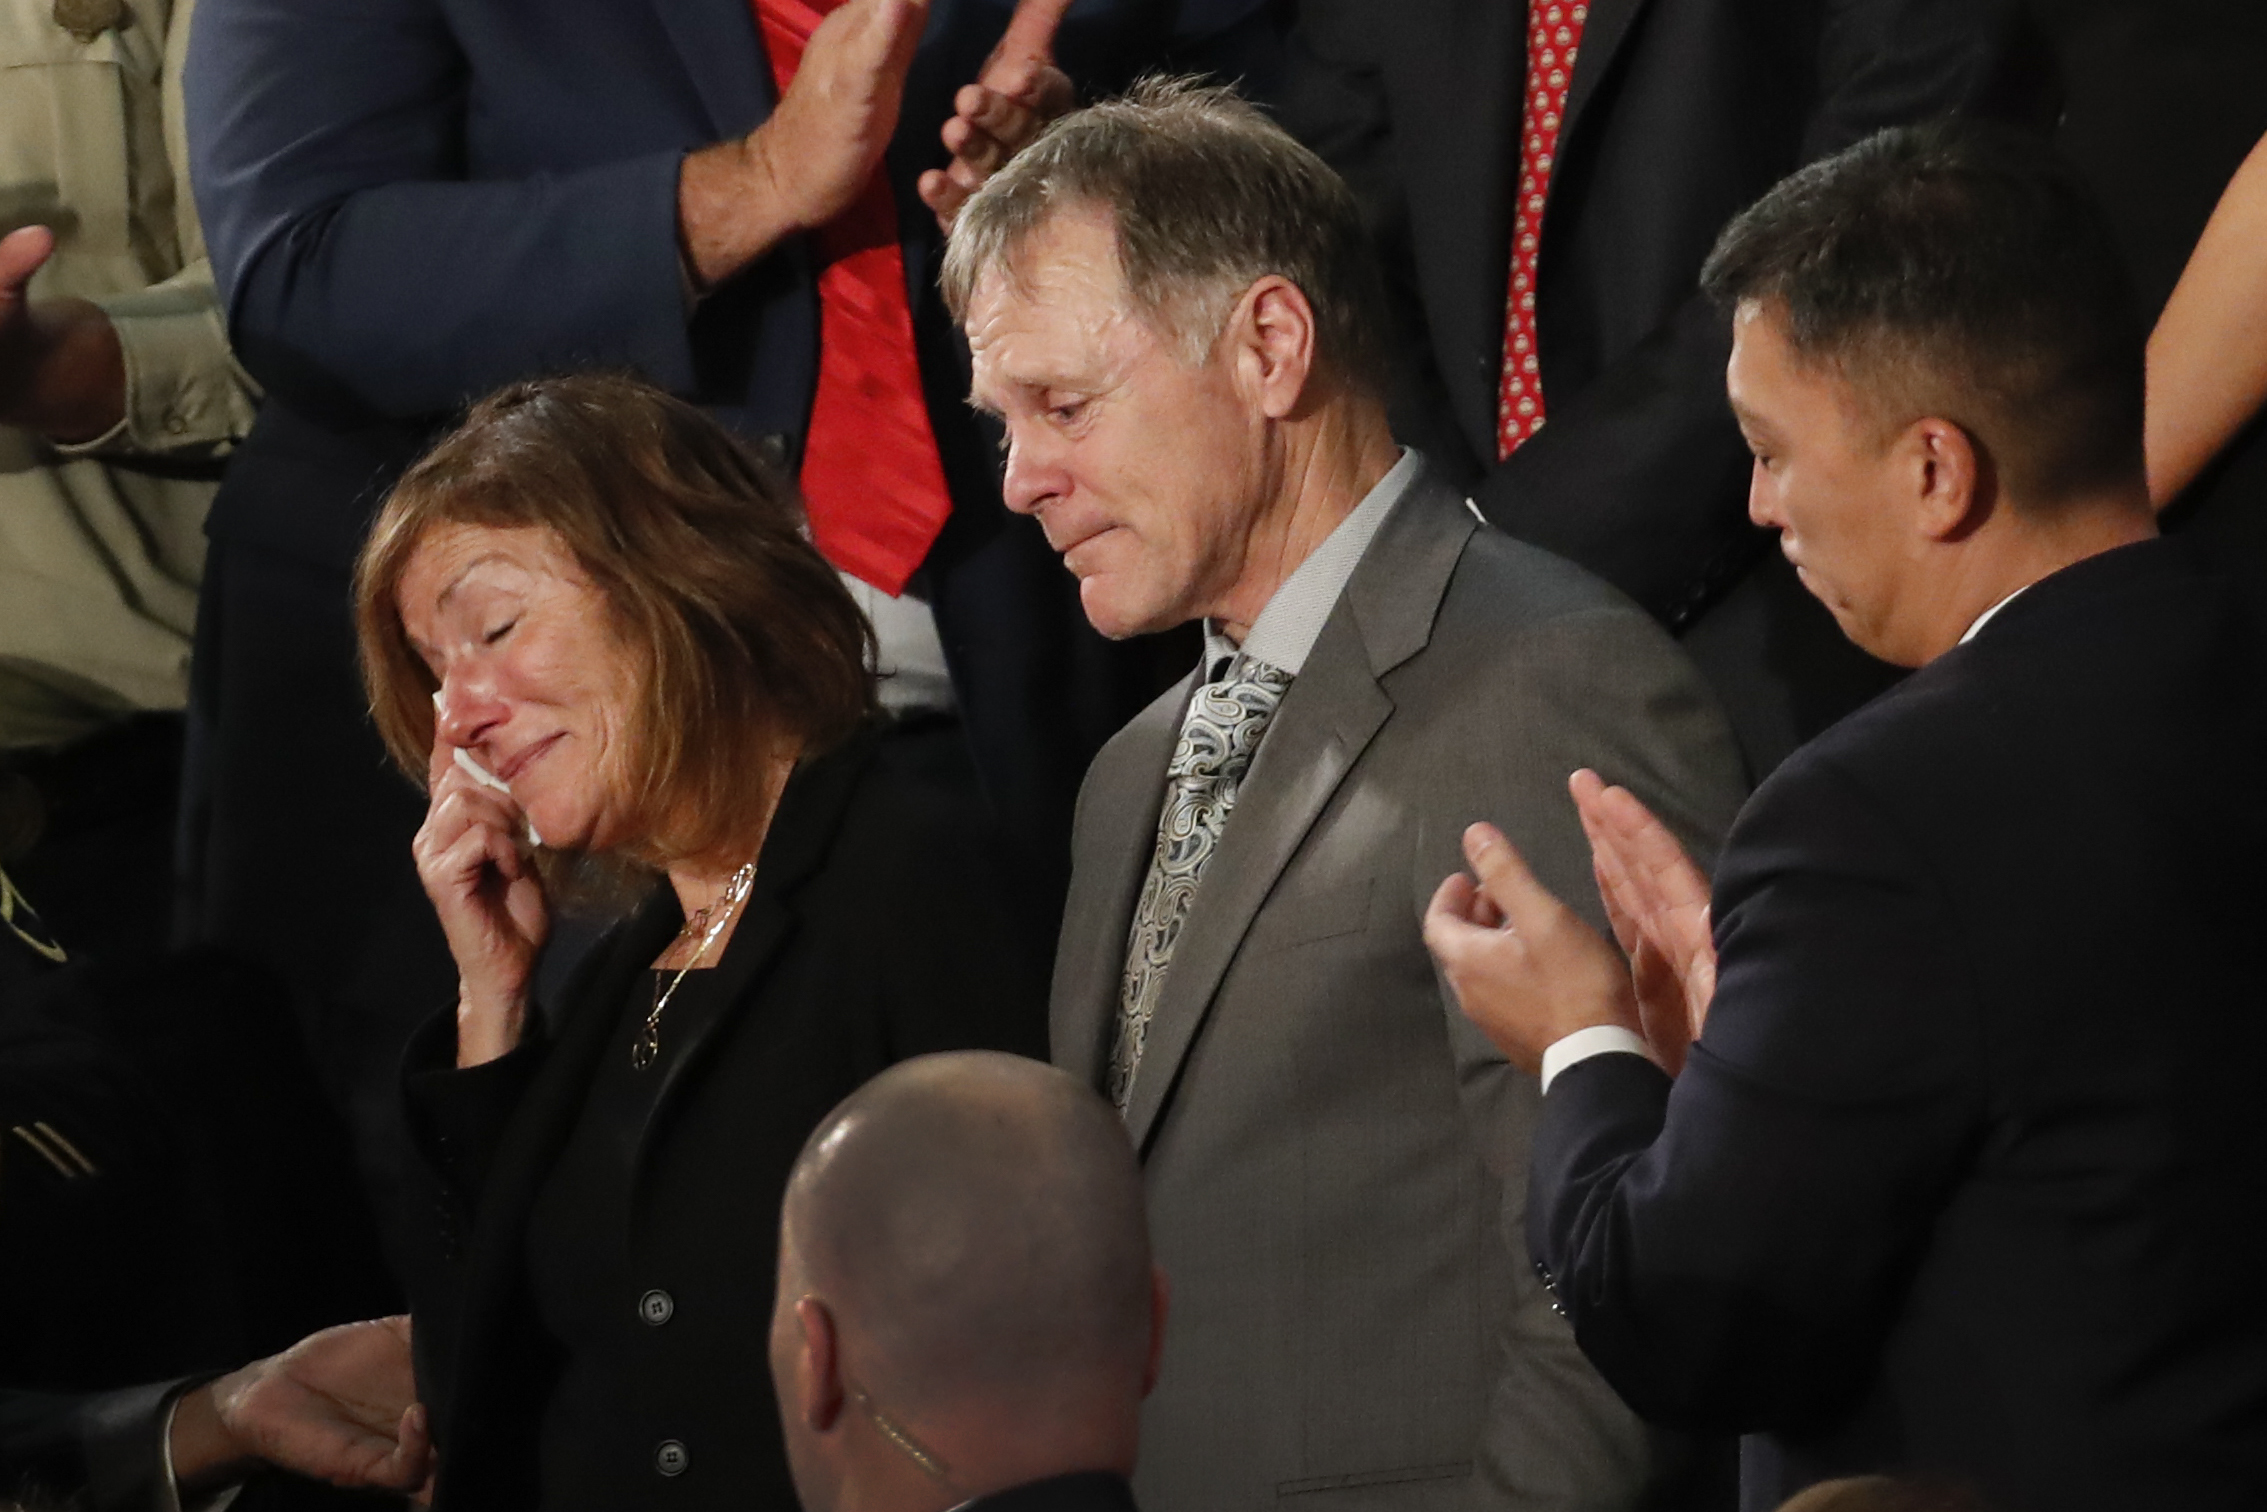 The teary-eyed parents of Otto Warmbier, the American student who died days after being freed from imprisonment in North Korea, react to a standing ovation during the 2018 State of the Union address.